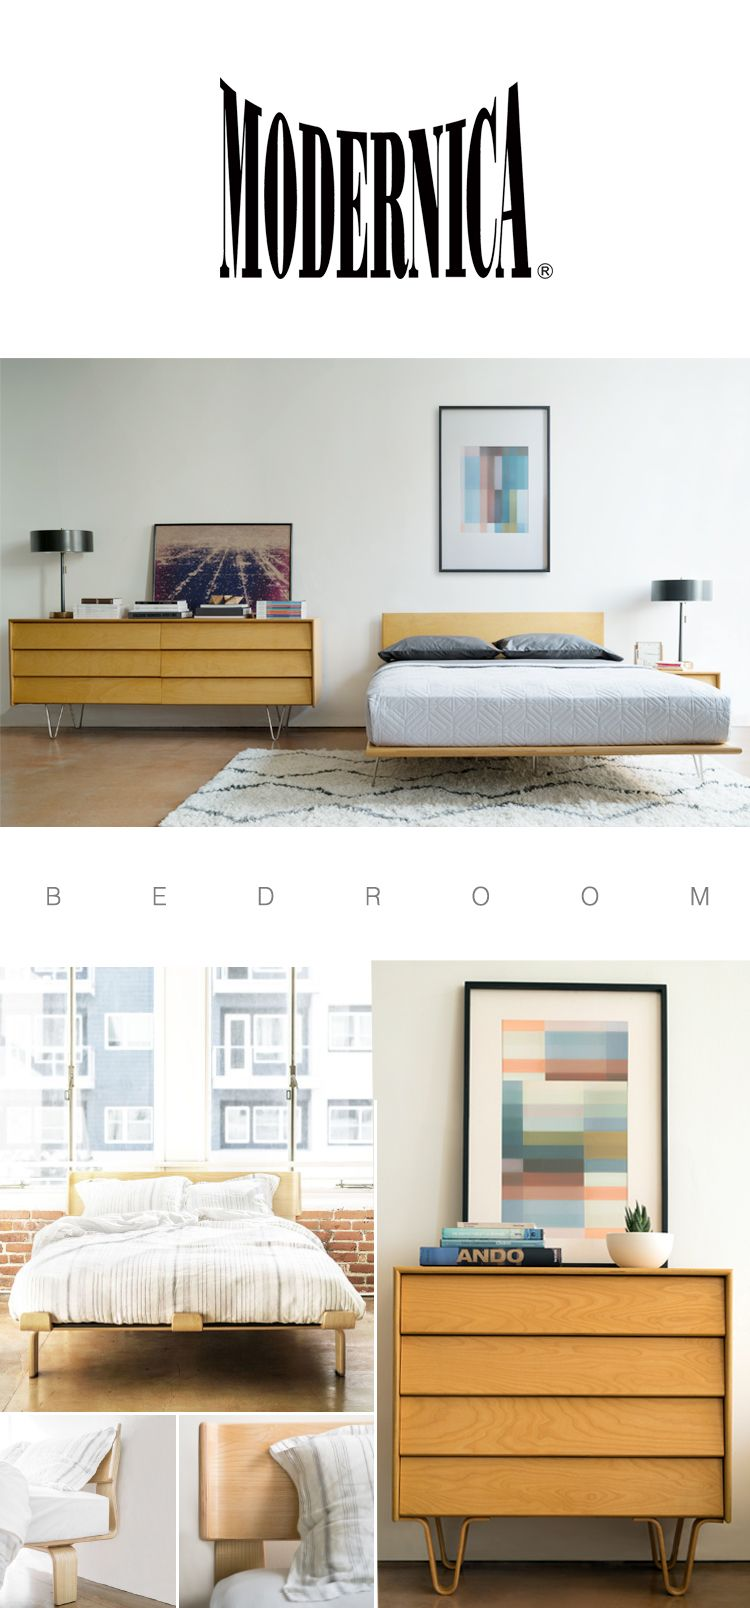 Modernica case study bedroom furniture made in los - Bedroom furniture in los angeles ...